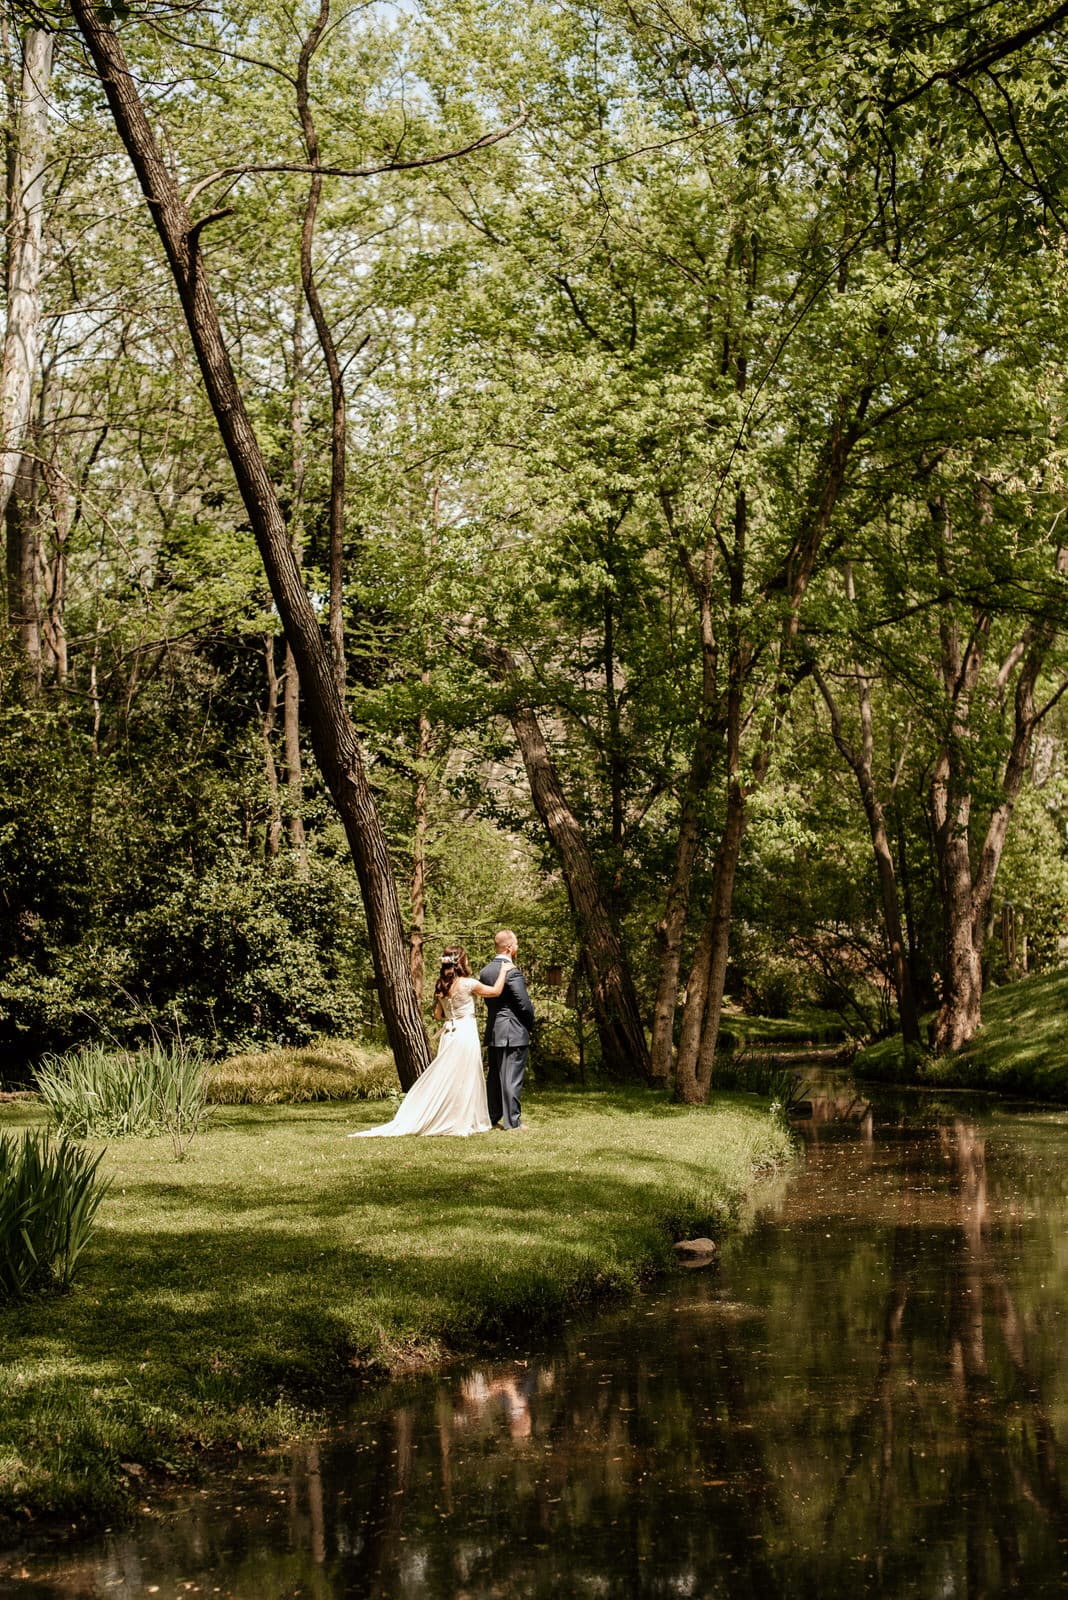 Wedding First Look in Nature